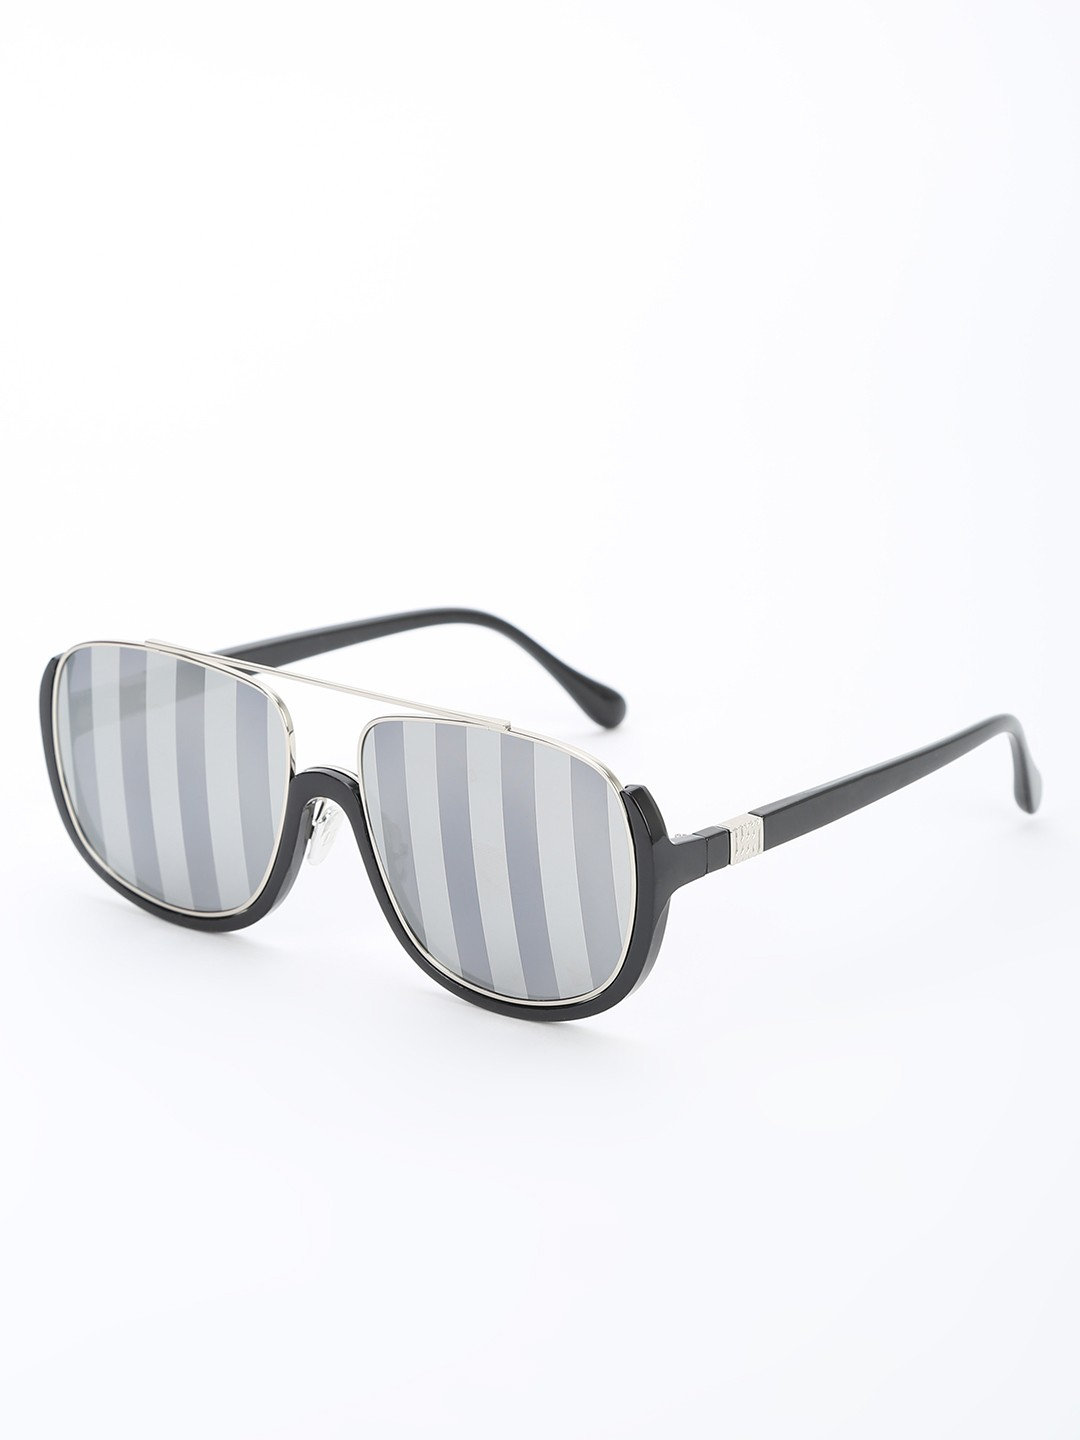 Pataaka Black Texture Mirrored Pilot Sunglasses 1